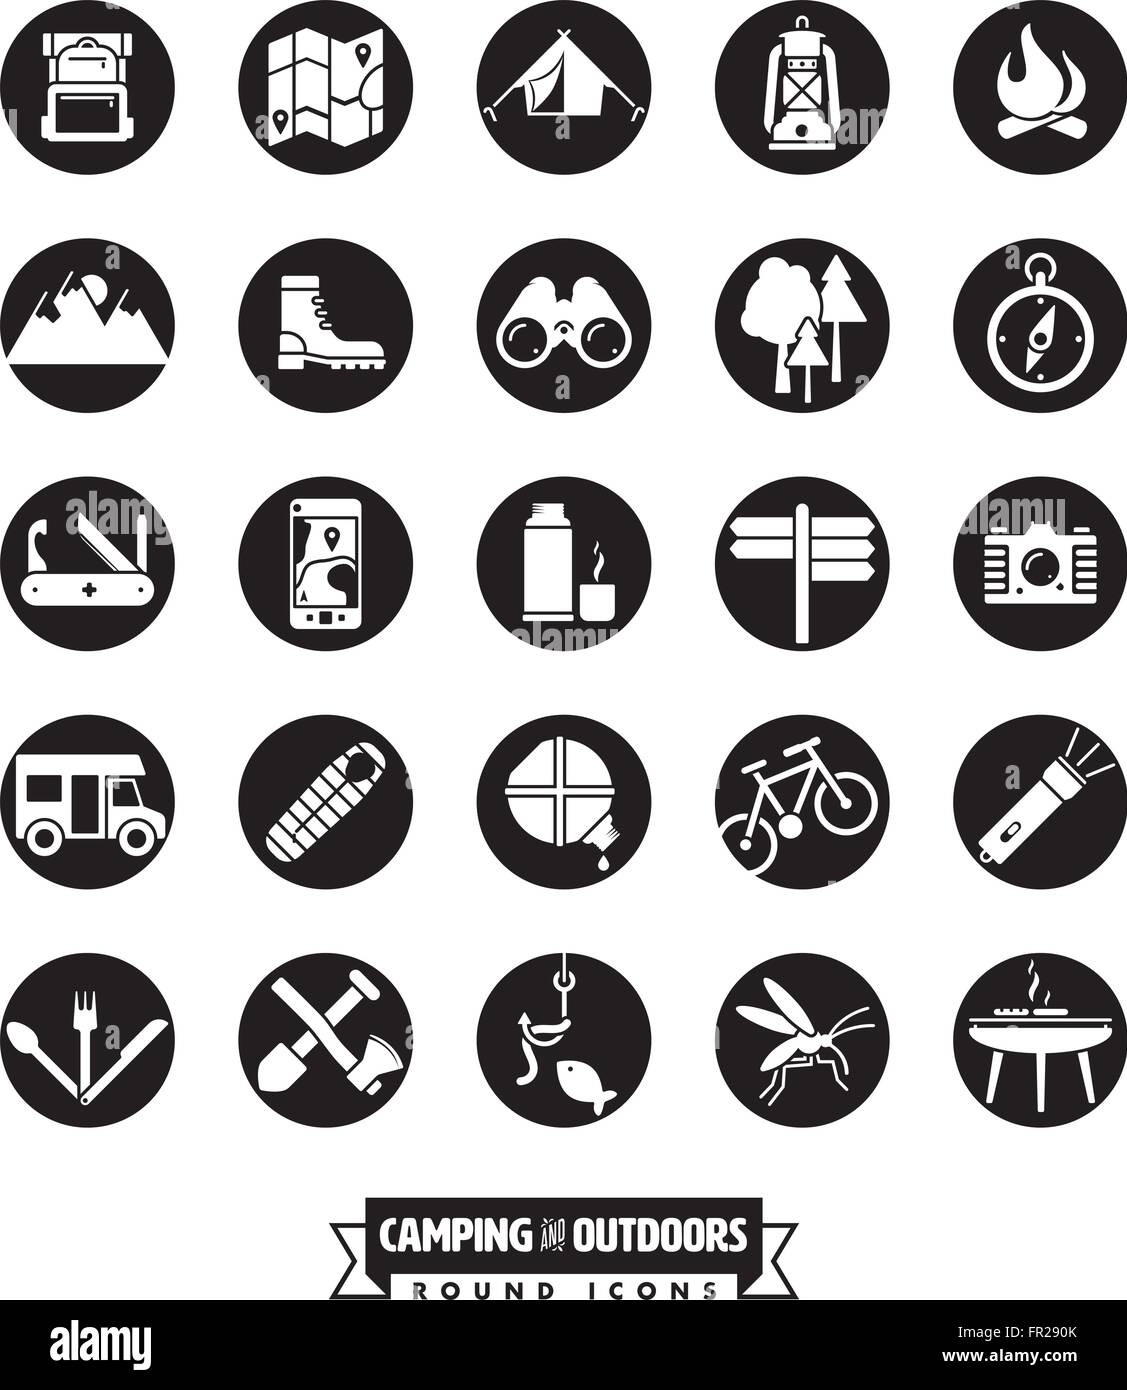 camping, hiking and outdoor pursuit vector round icon ...